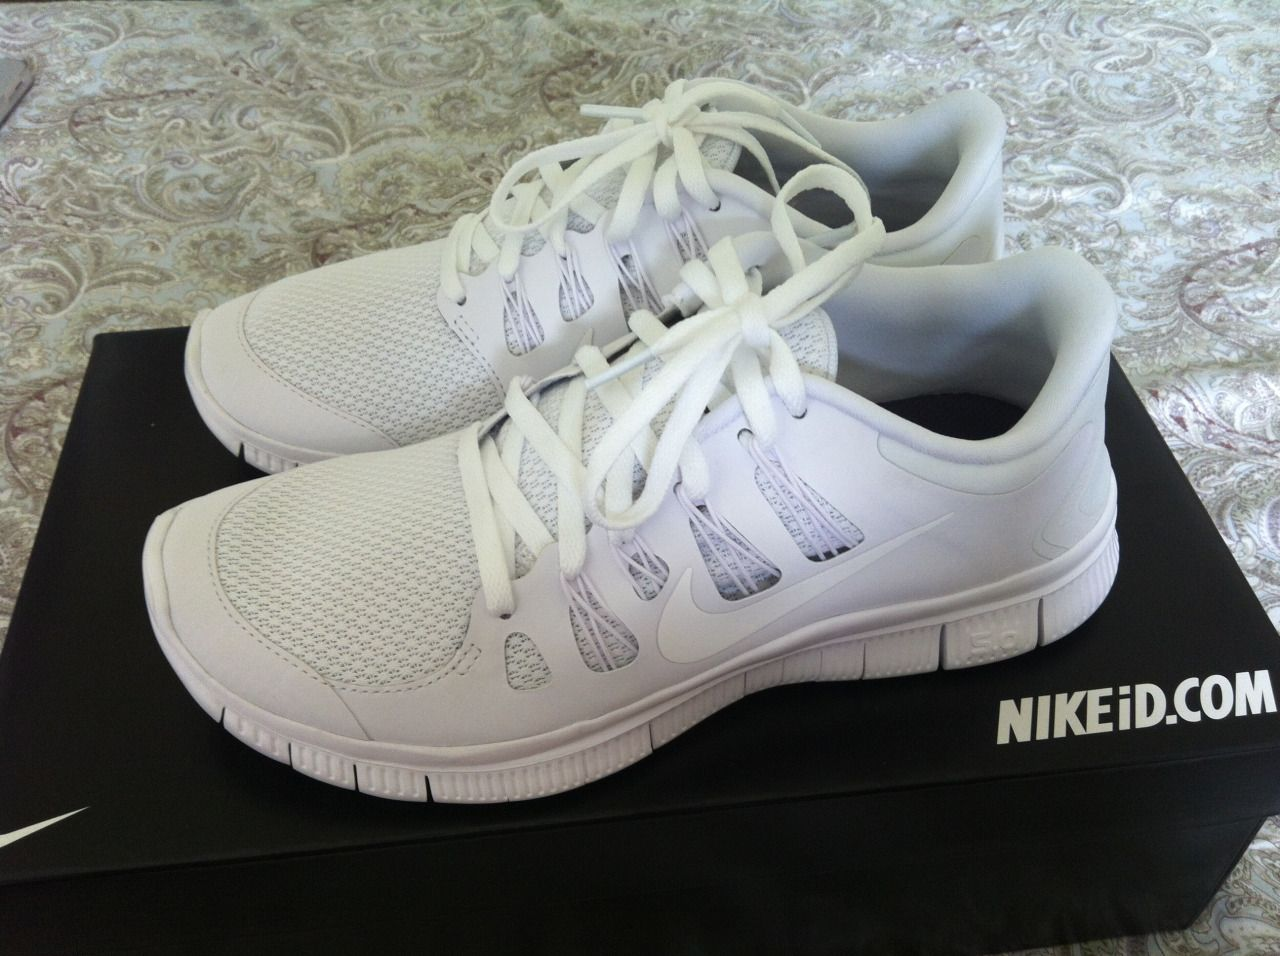 new arrival 8783b 90d8f nike free Wheretoget - Grey Nike Air Max sneakers https   tumblr.com